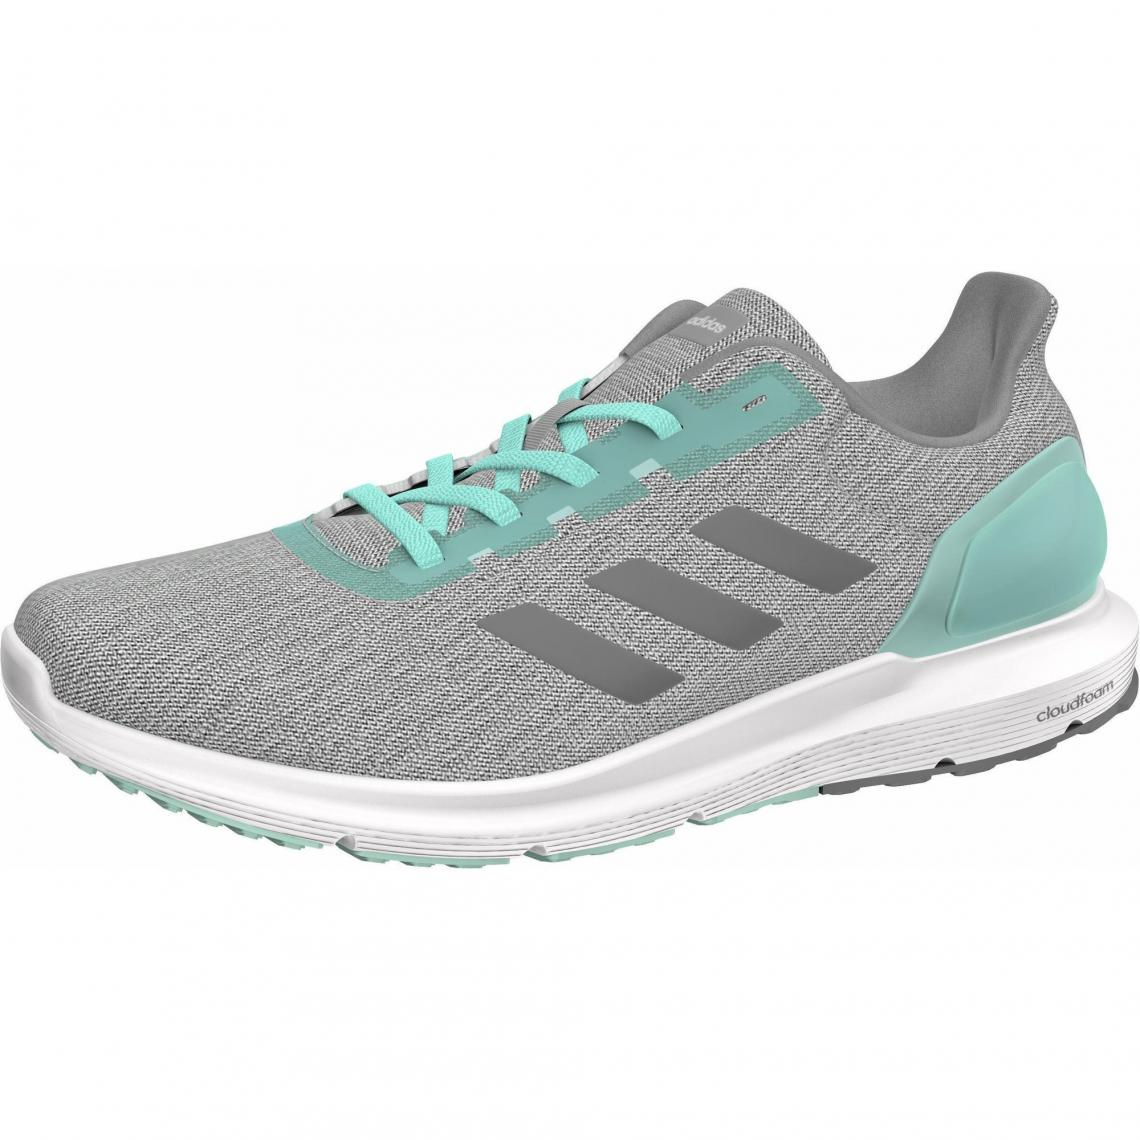 quality design 5056c 72daf adidas Performance Cosmic 2.0 chaussures de running femme - Gris Clair -  Turquoise Adidas Femme